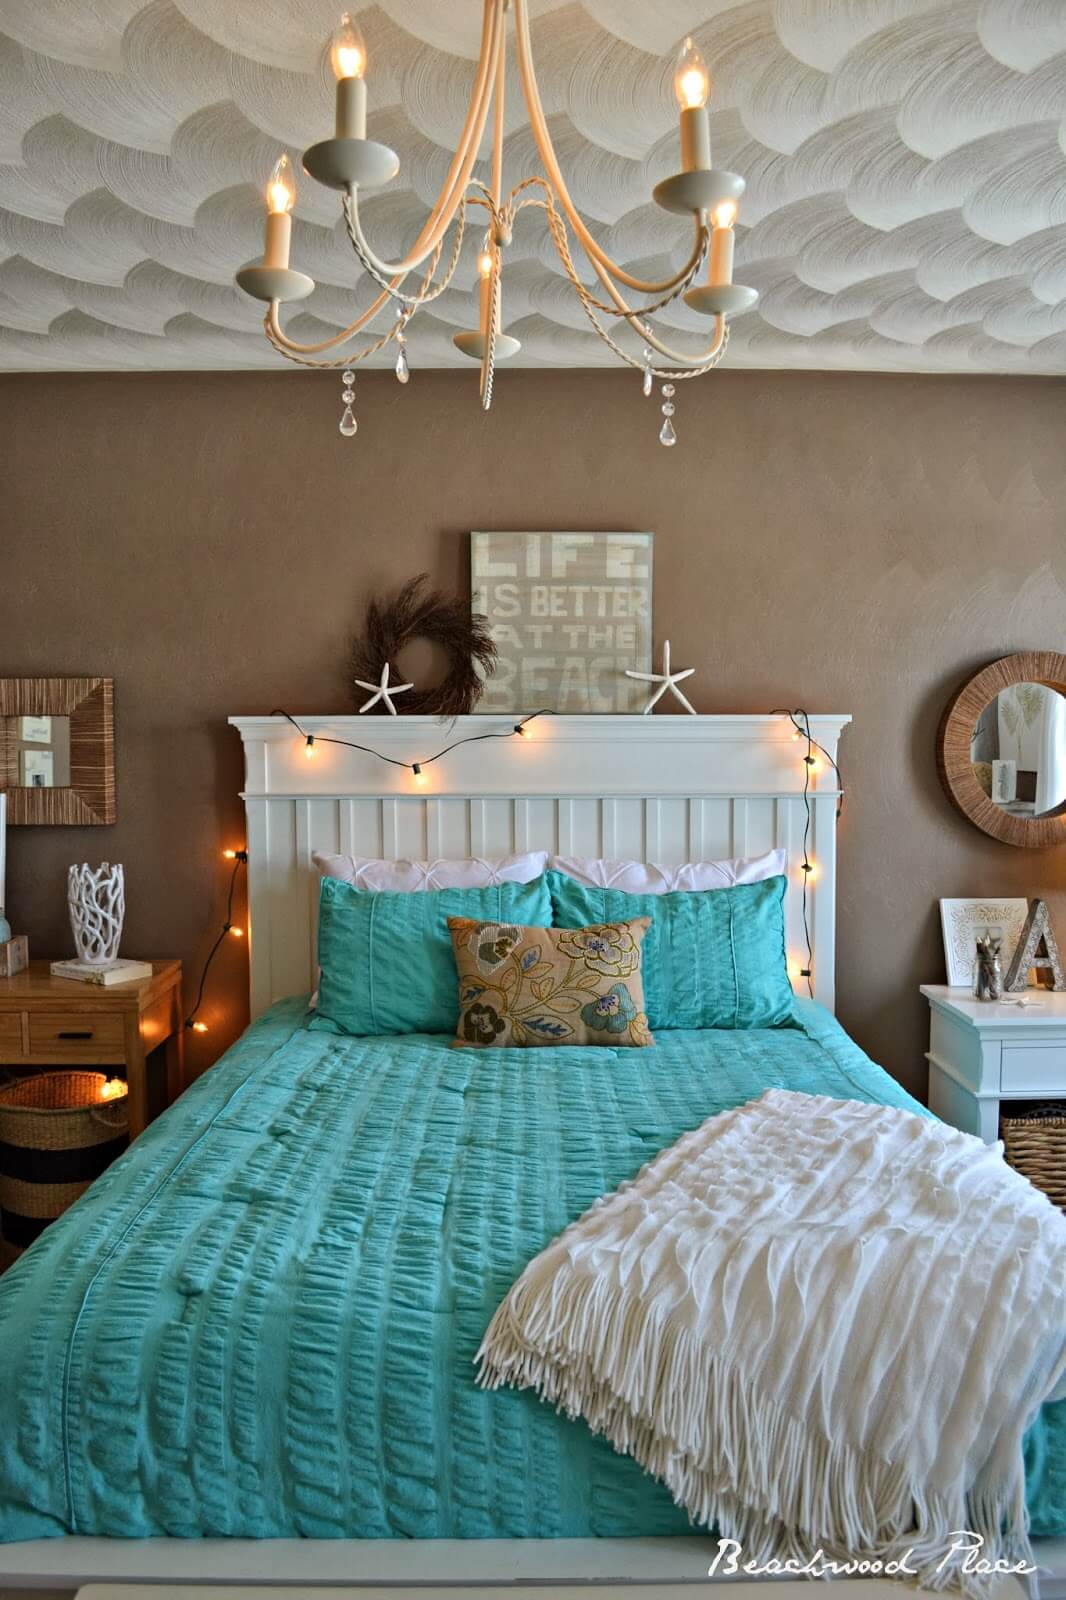 Bold Turquoise In The Bedroom for a Whimsical Sea-Inspired Retreat